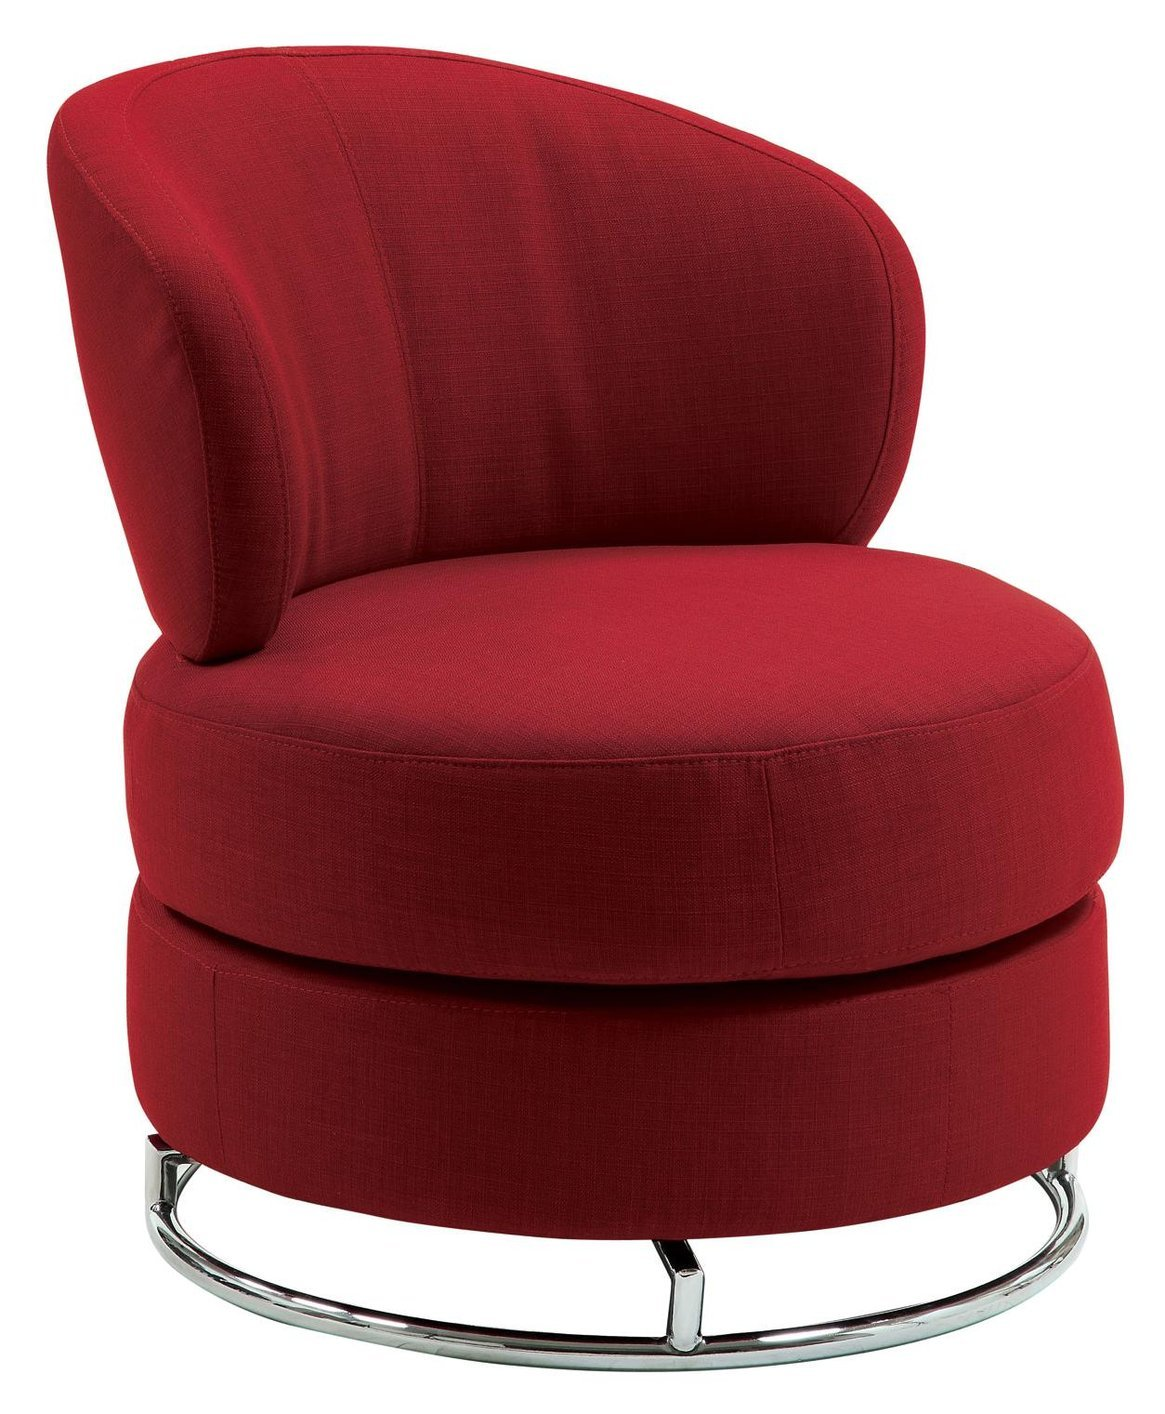 red fabric swivel chair - steal-a-sofa furniture outlet los angeles ca